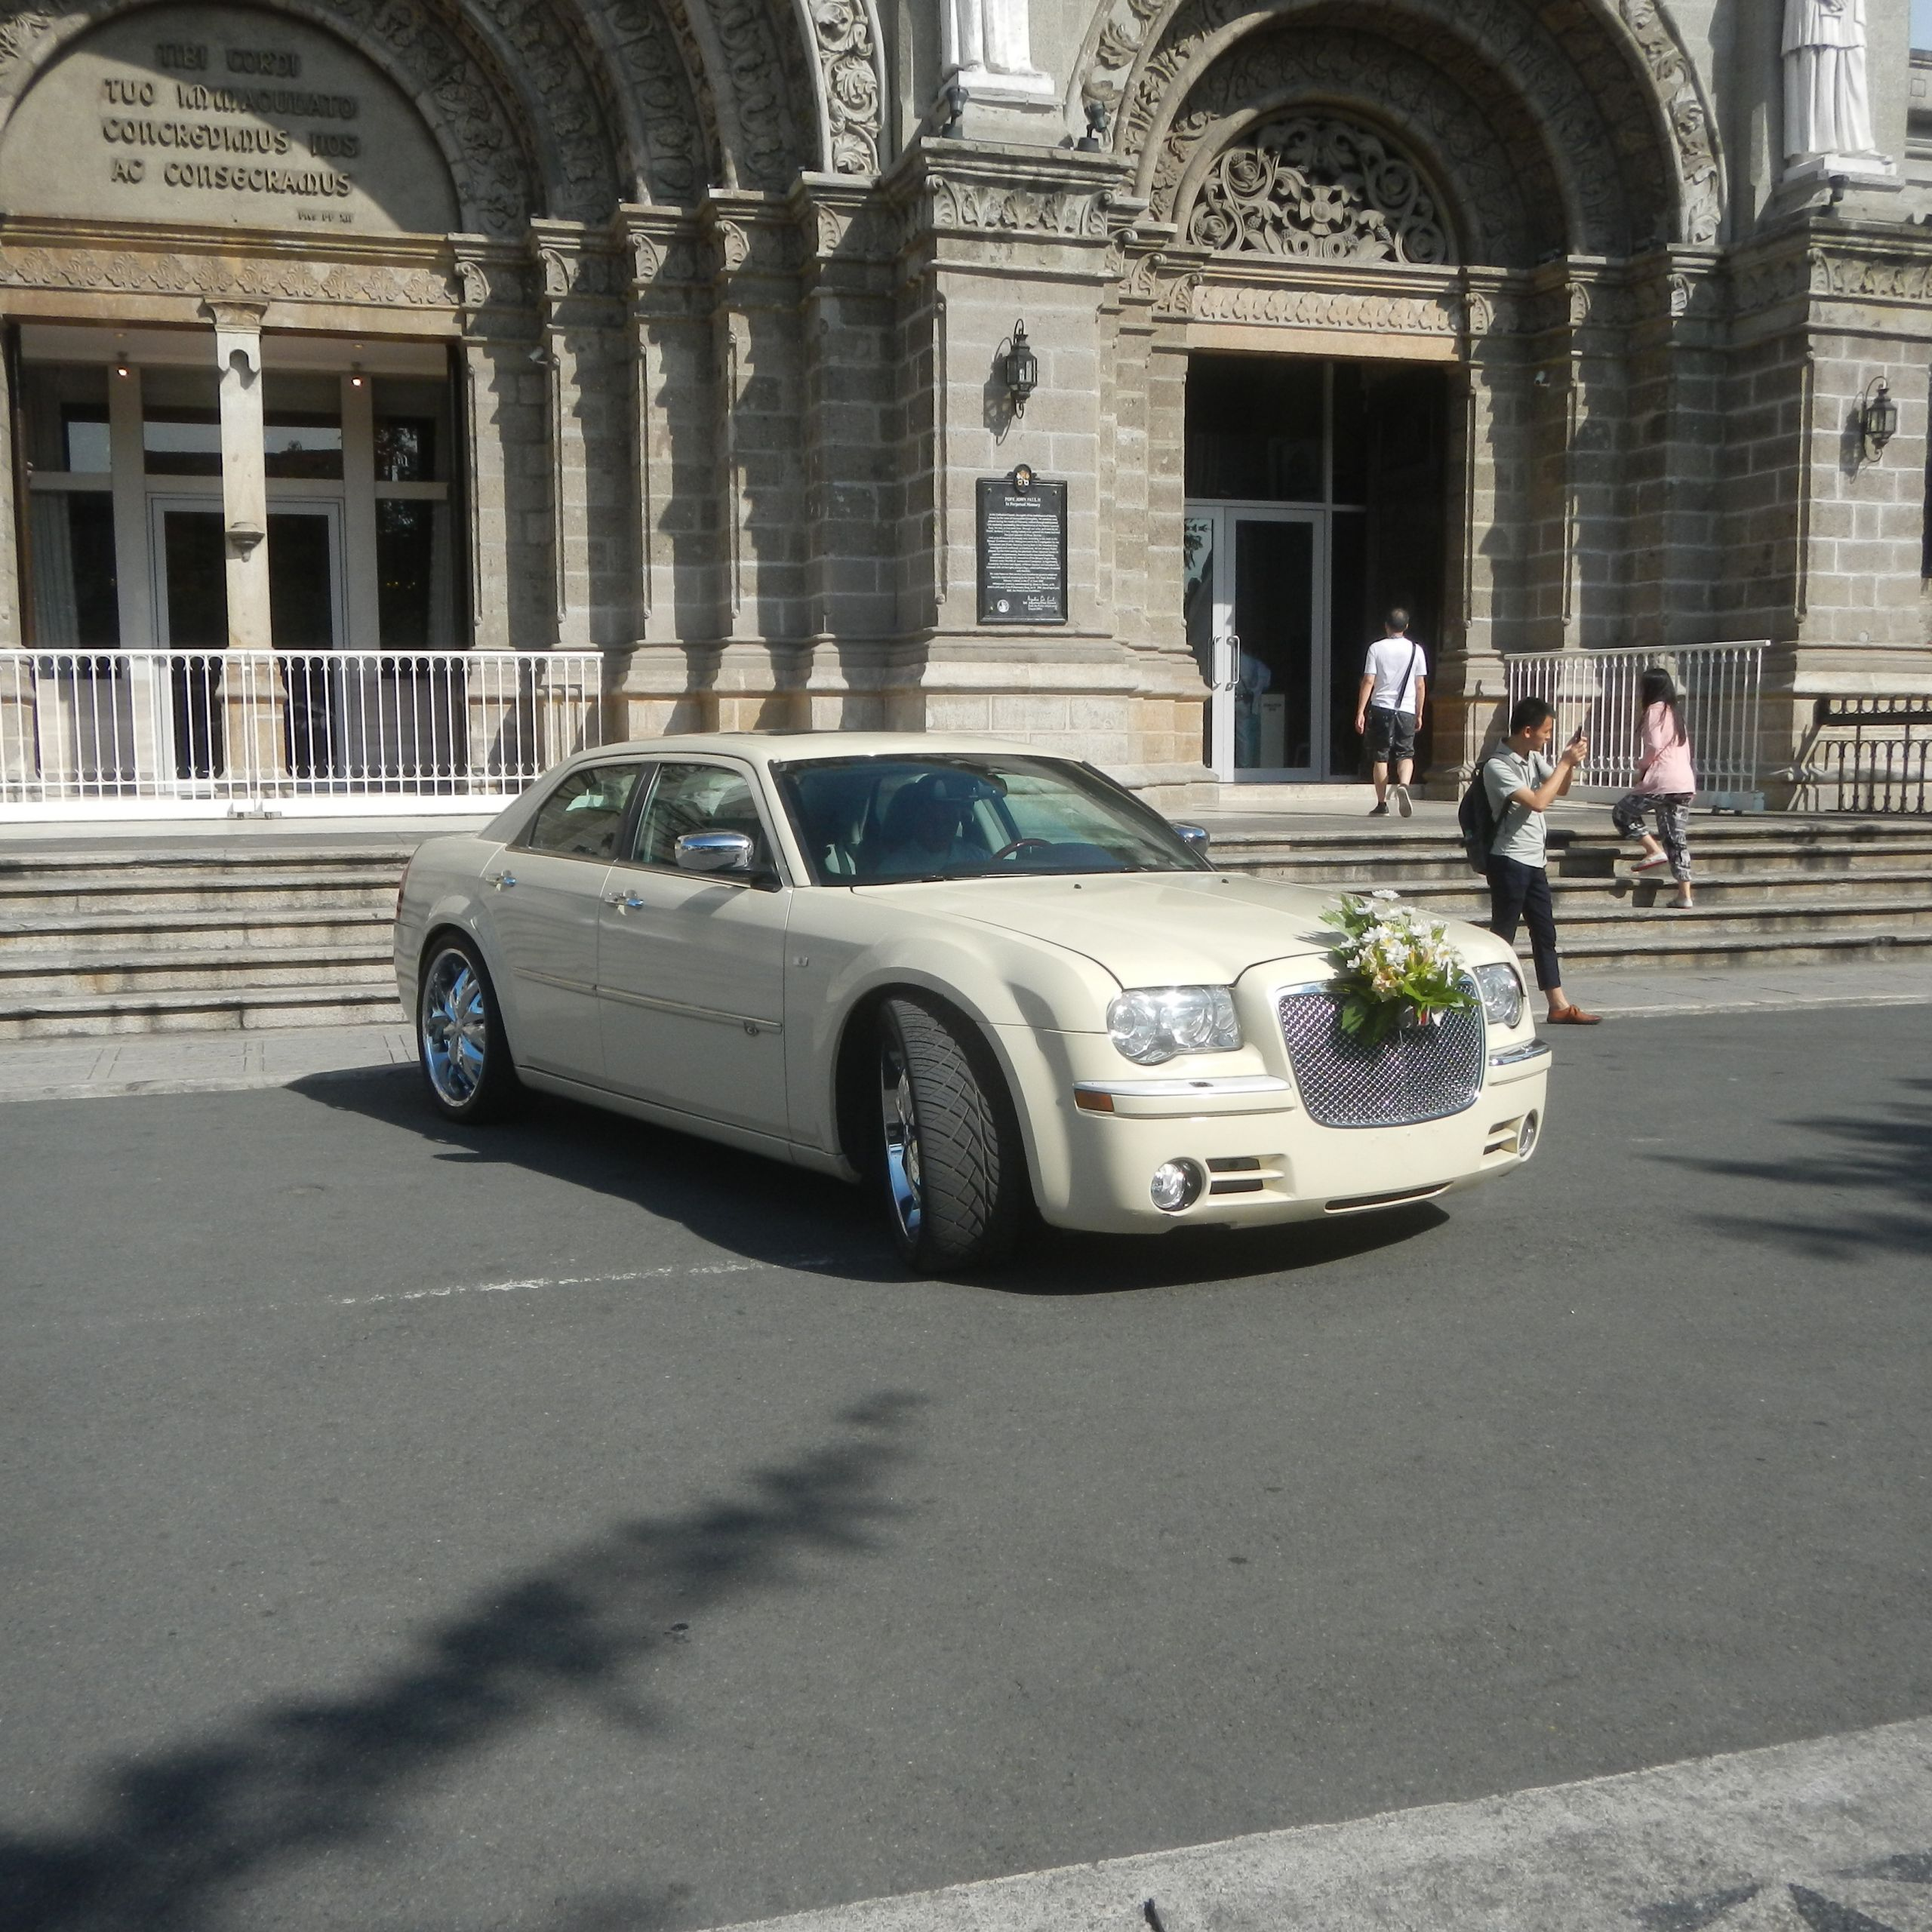 2011 Chrysler 300 New File Jfintramuros Manila Landmarks Wedding Cars